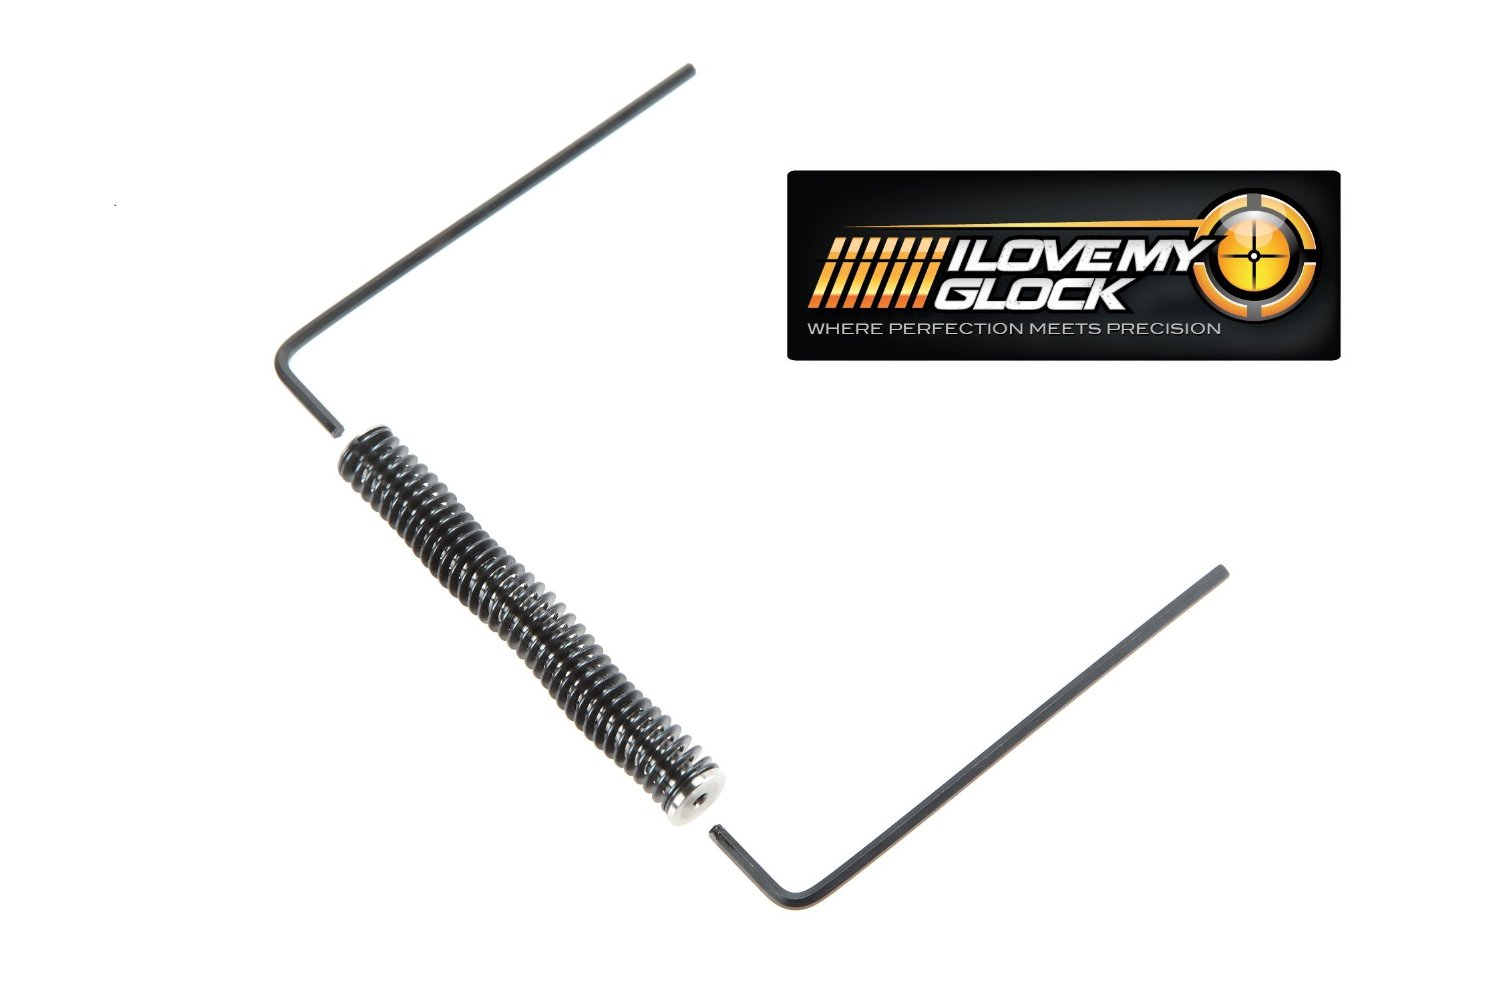 Gen 1, 2 & 3 Glock Stainless Steel Recoil Guide Rod Spring Assembly for G 20 21 20sf 21sf